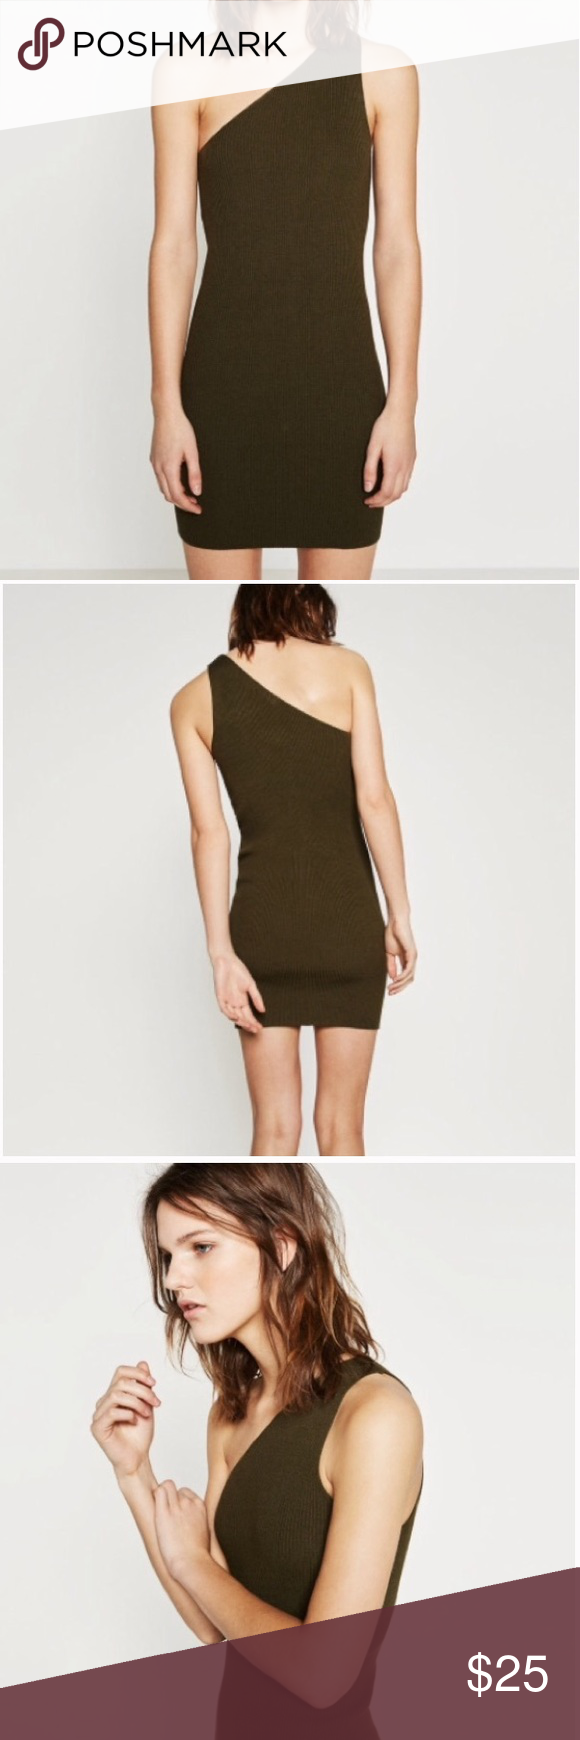 8c3ca4e9 Zara Knit Dress Olive green Zara Knit One shoulder tight dress just  beautiful 😍 Zara Dresses One Shoulder